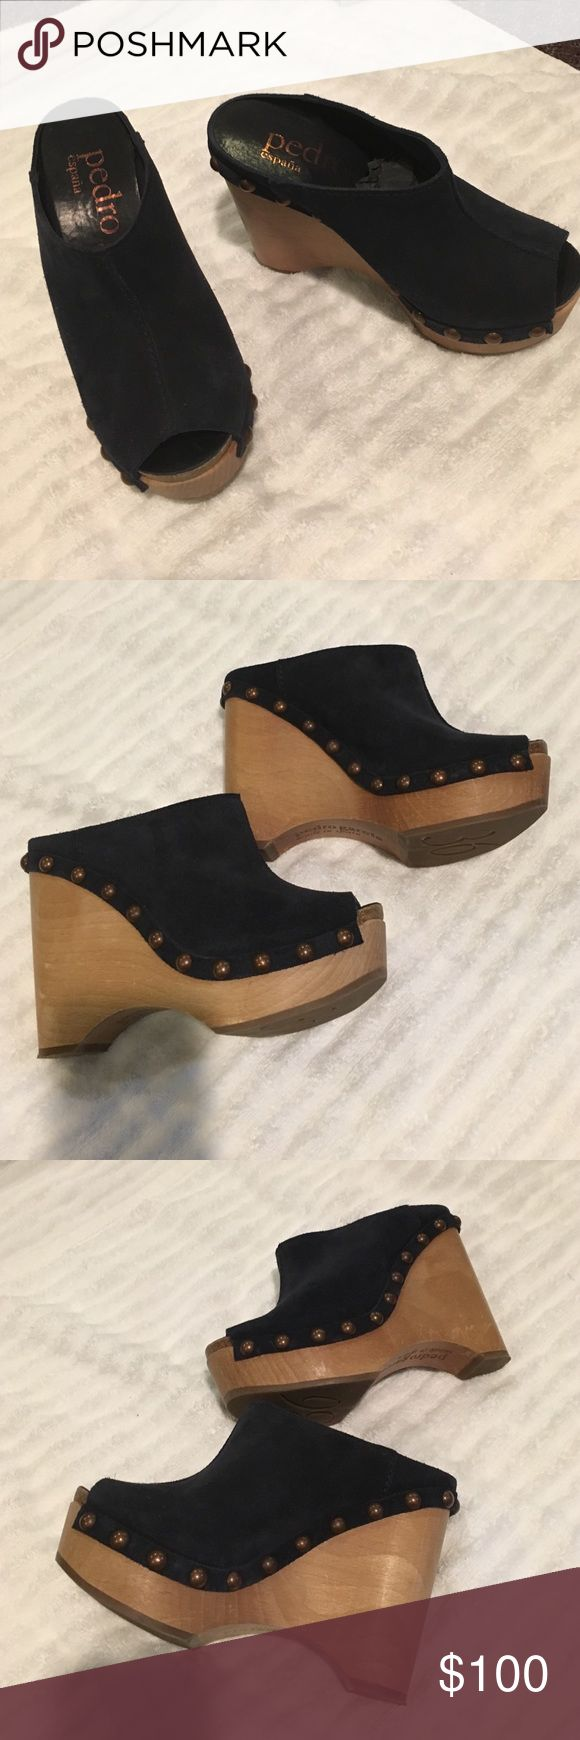 "PEDRO GARCIA NAVY SUEDE CLOGS Gorgeous wedge CLOGS made by Pedro Garcia. 4"" wedge. Open toe. Bronze hardware. Mint condition. Very comfortable. Slide your foot right into these awesome CLOGS pedro garcia Shoes Mules & Clogs"